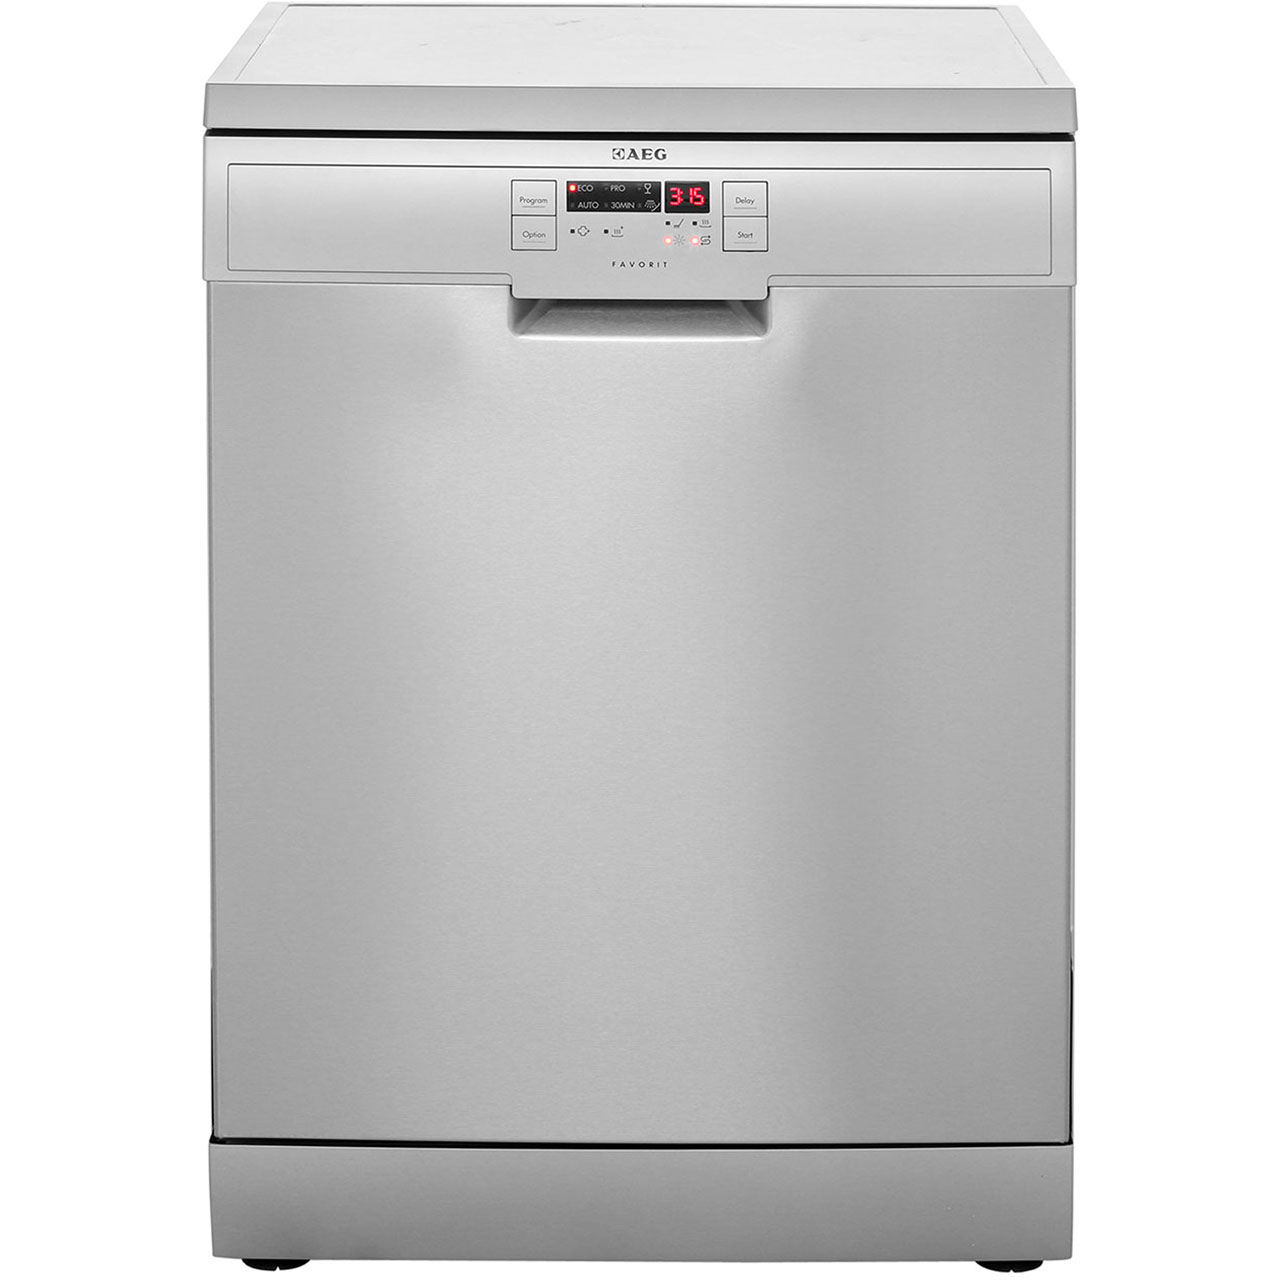 AEG Favorit F56305M0 Free Standing Dishwasher in Stainless Steel